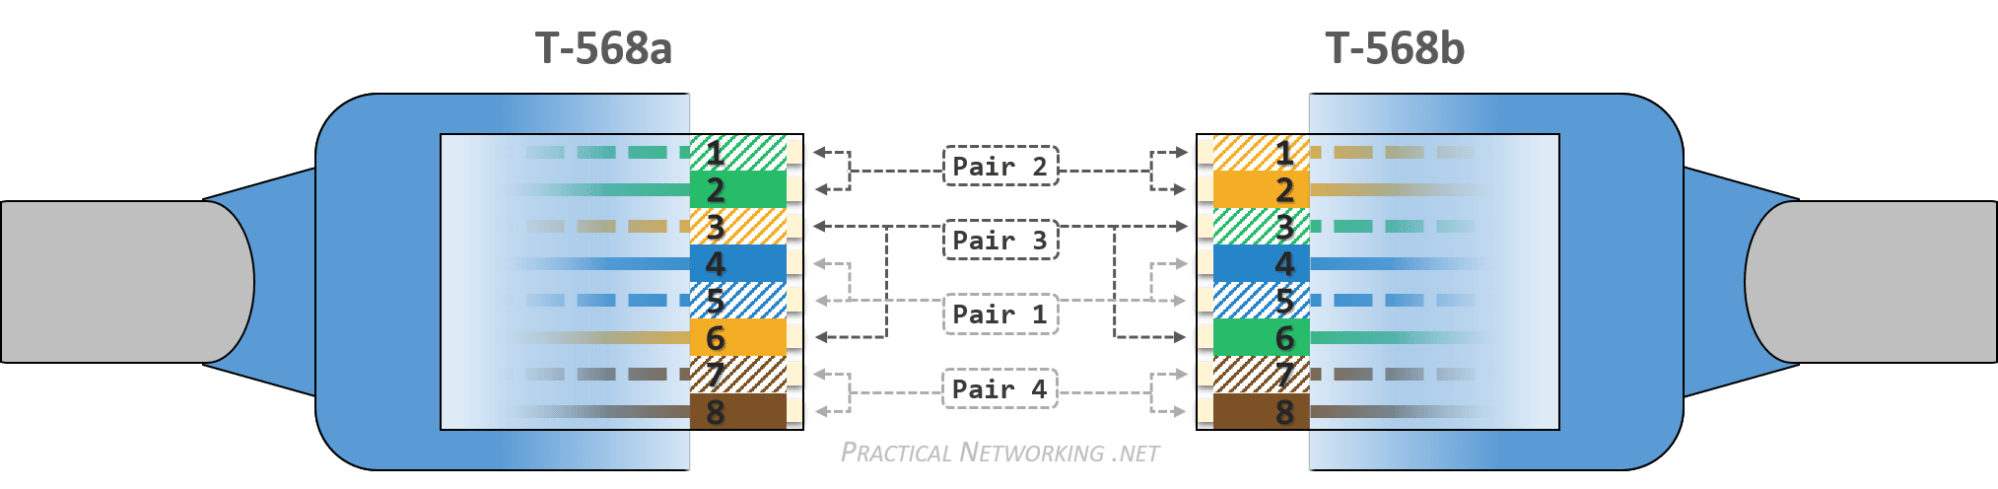 hight resolution of practical networking net